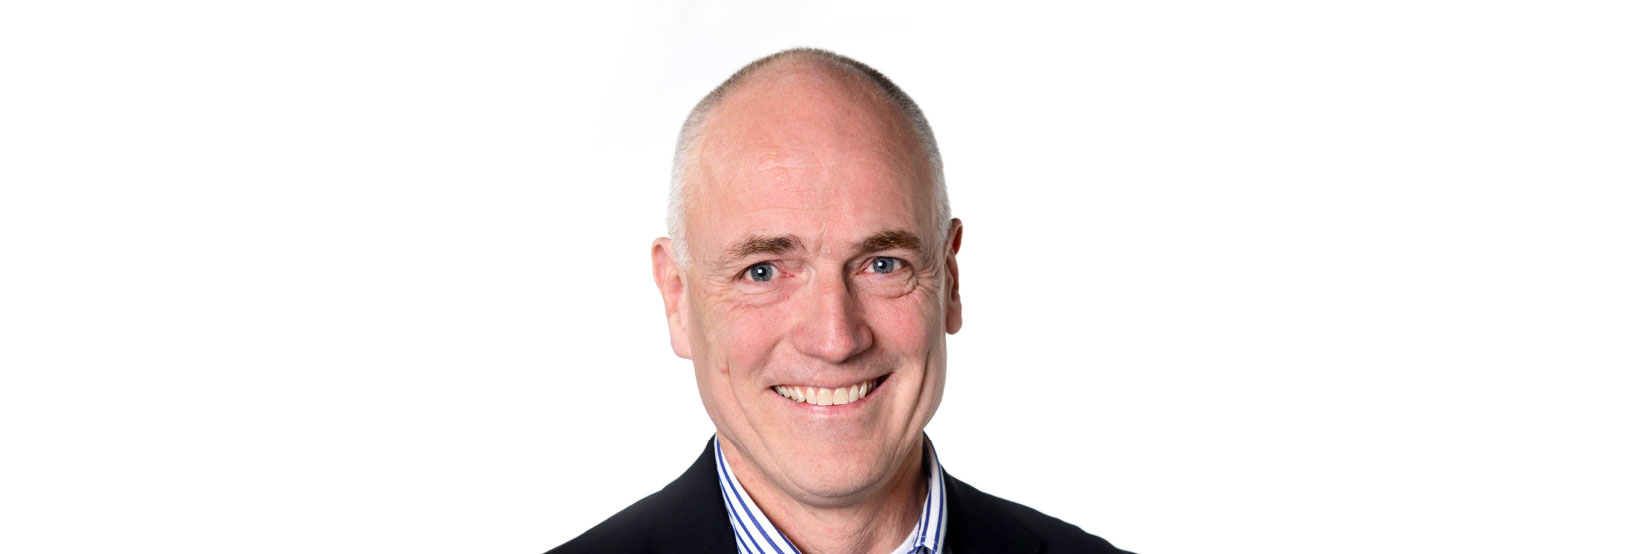 Stig Wikberg, AGENTIL's new co-leader